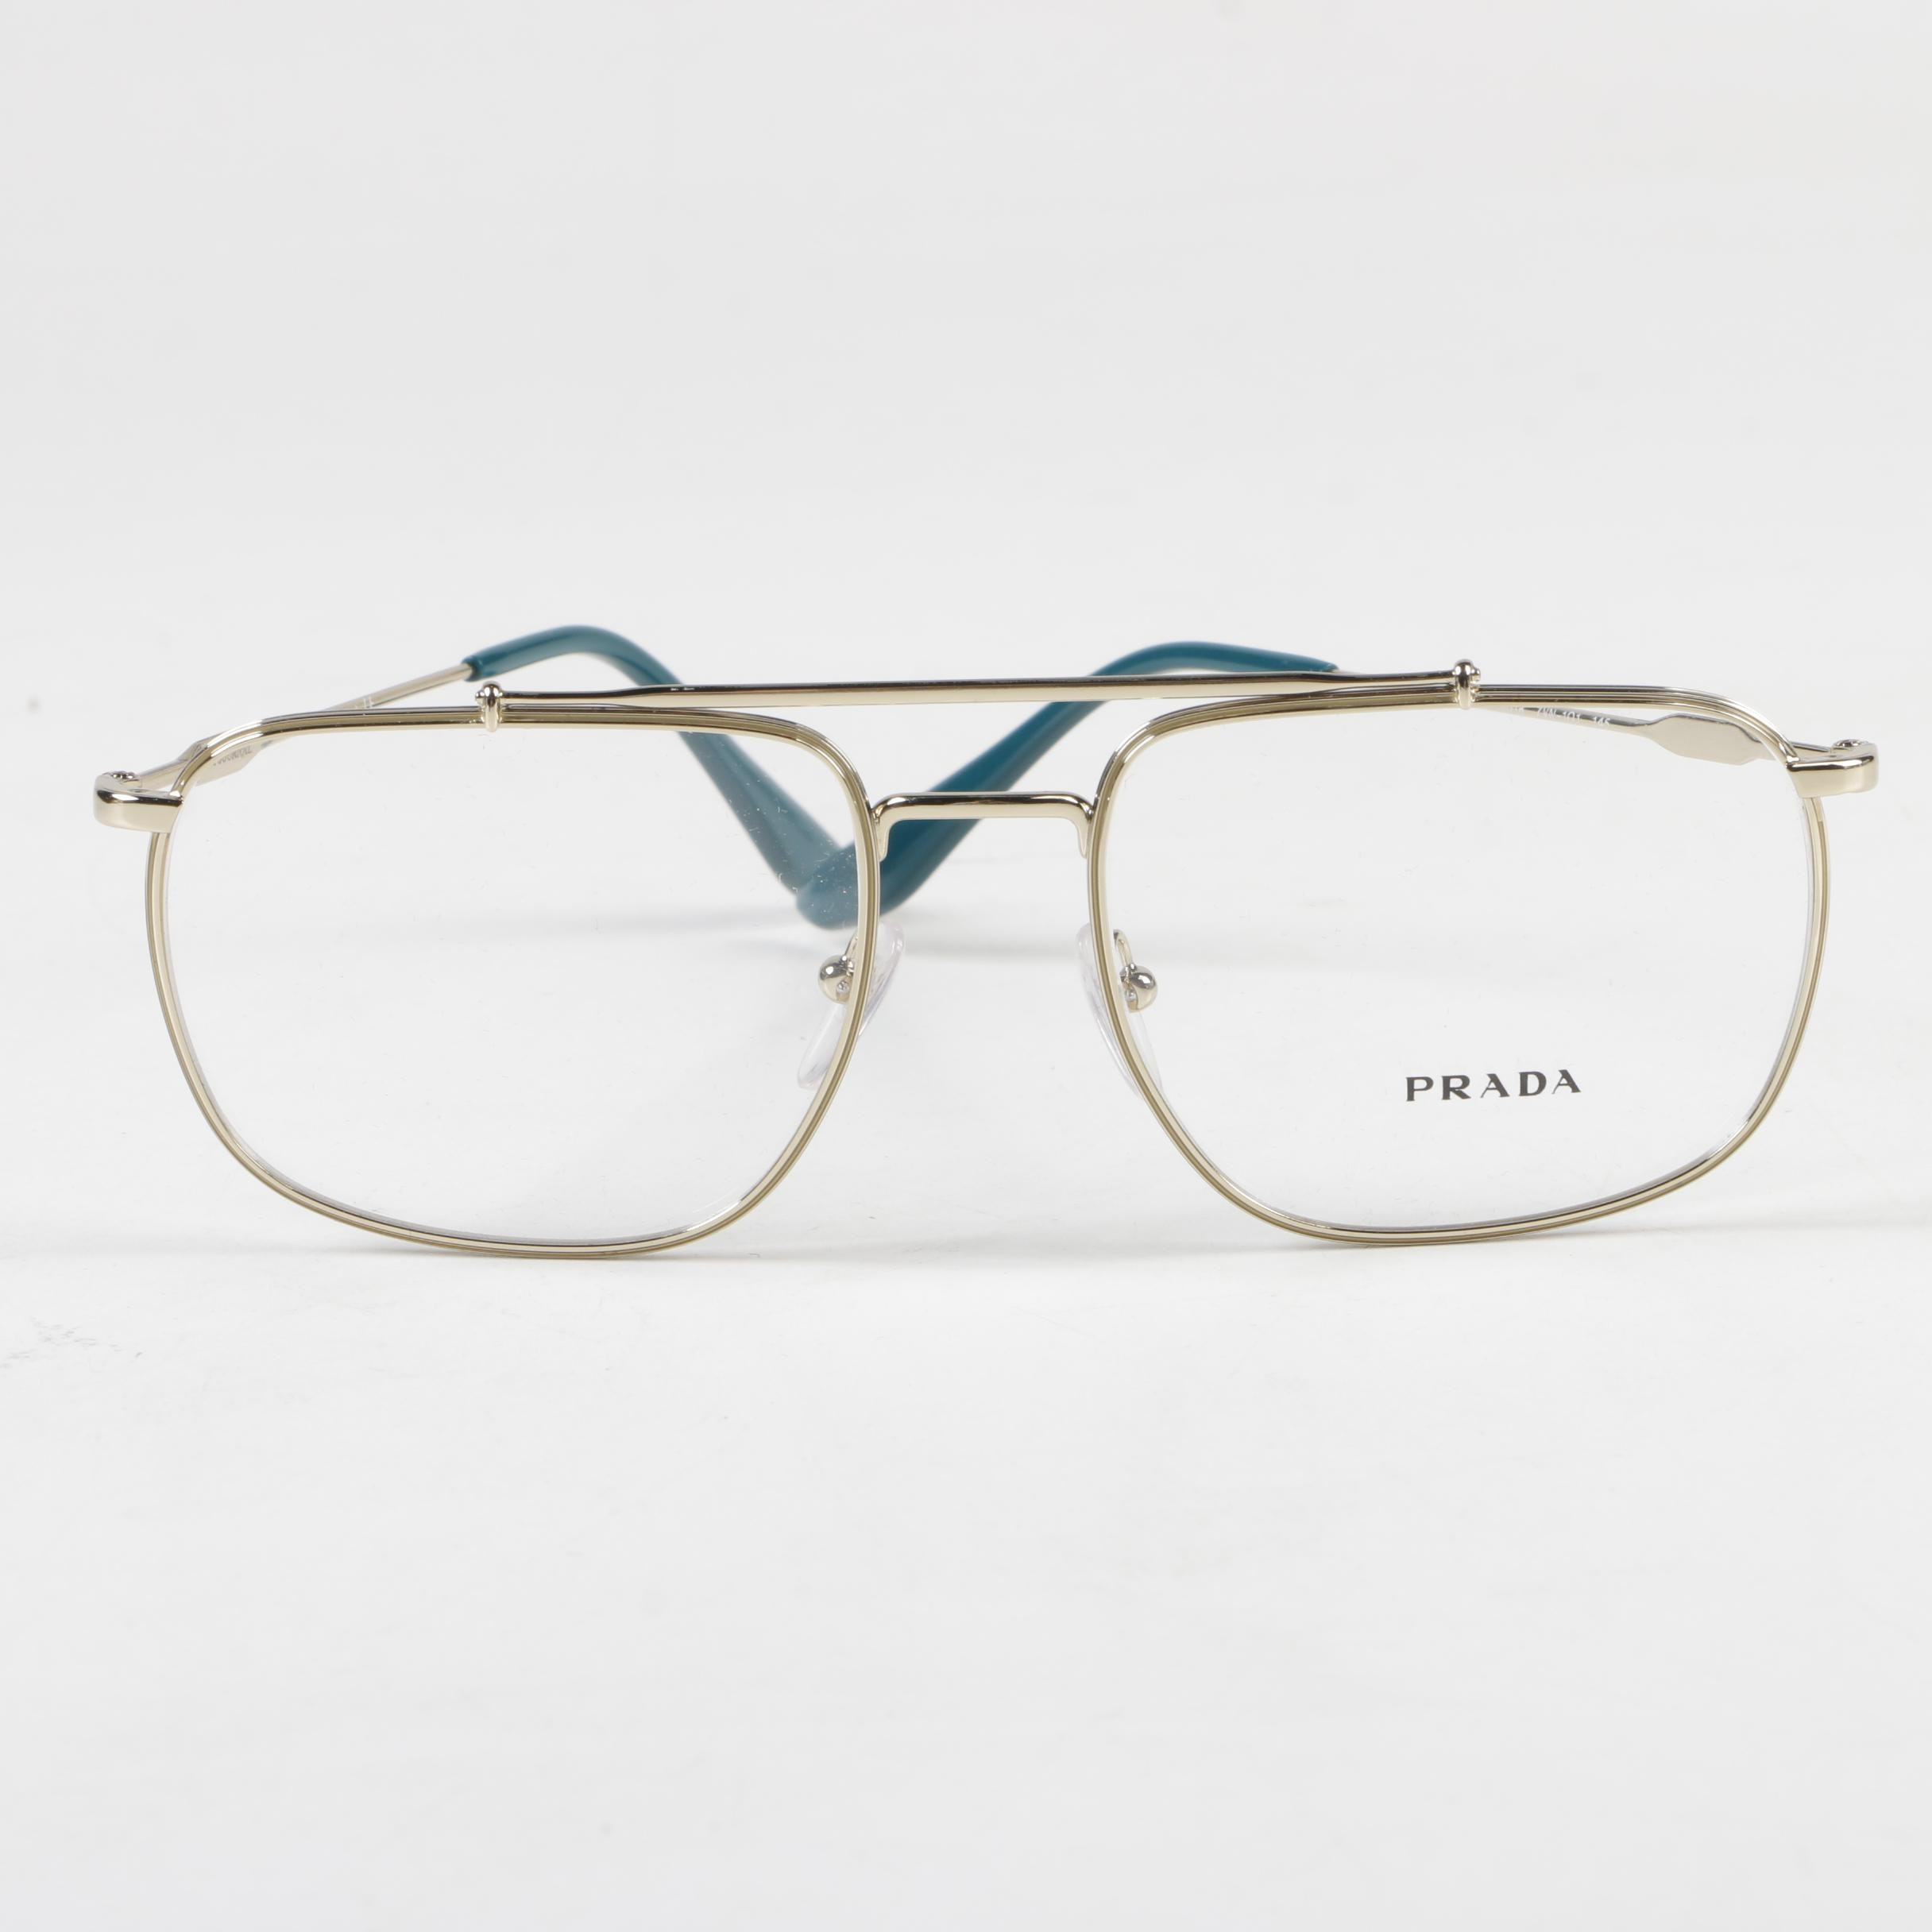 Prada VPR 56U Eyeglasses with Case, Made in Italy